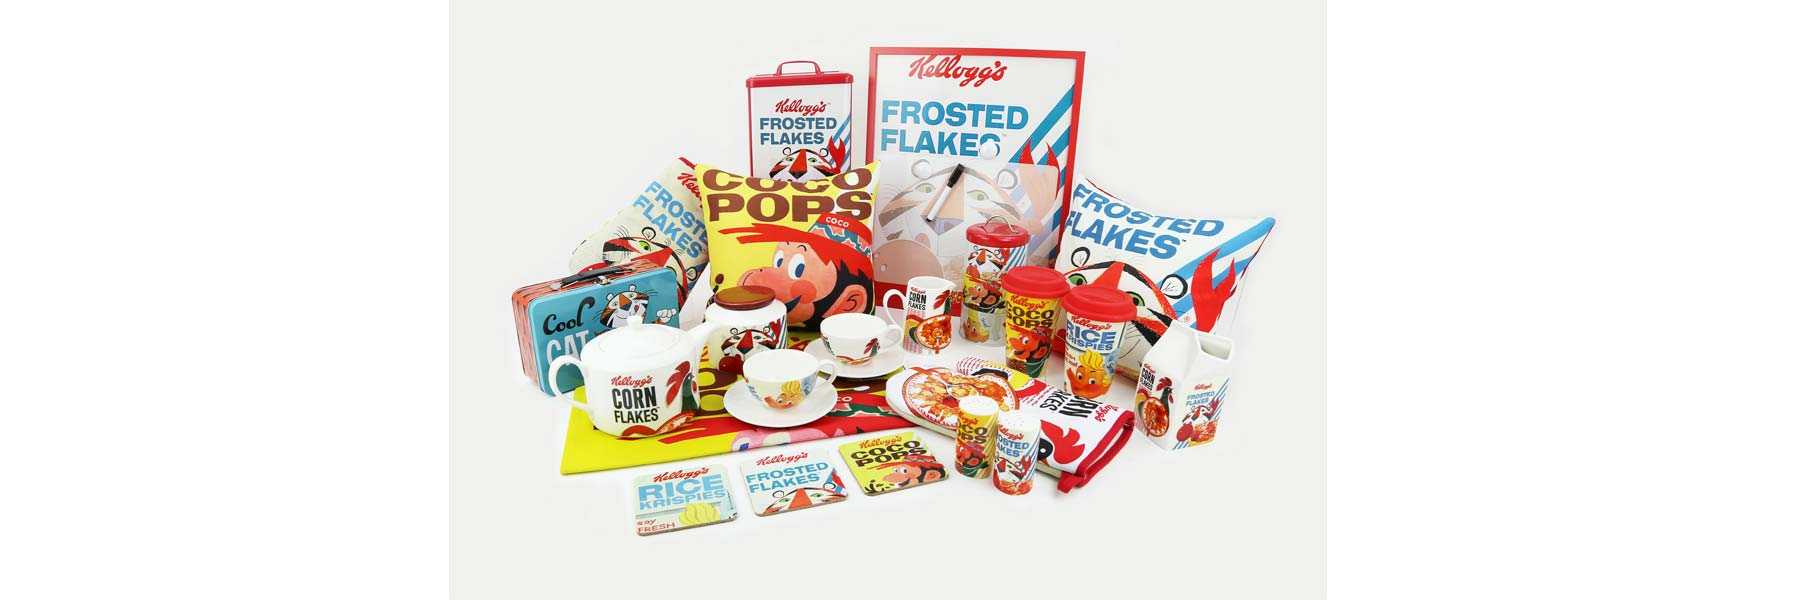 Above: An example of a lifestyle brand – Kellogg's Vintage homewares by Kimm & Miller.